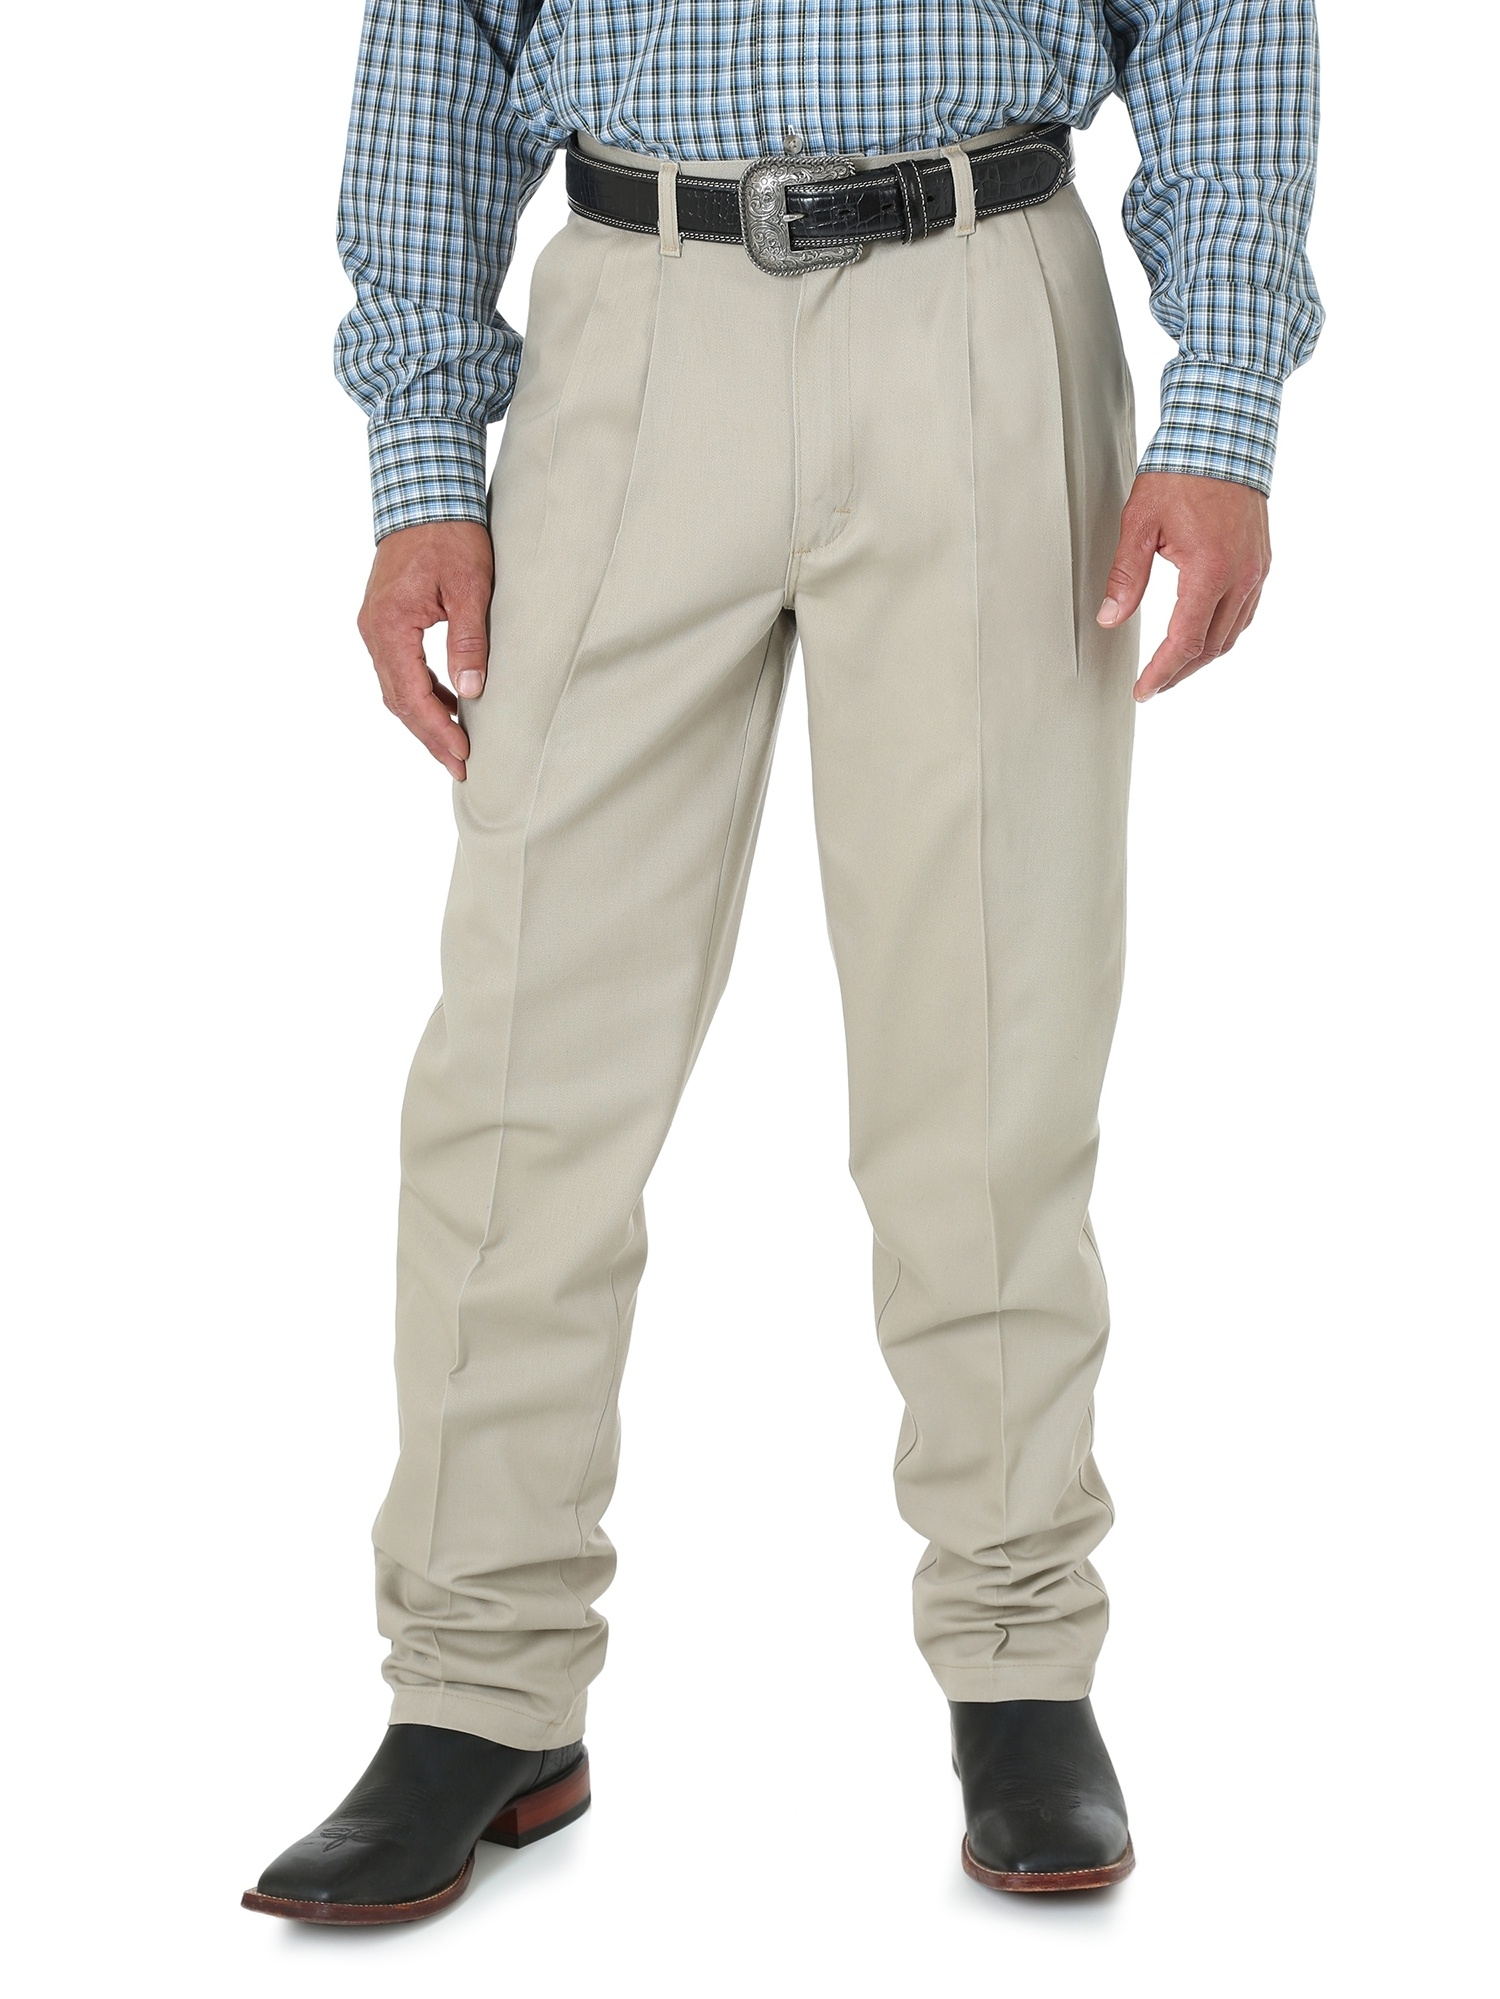 Wrangler Western Riata Pleated Front Casuals